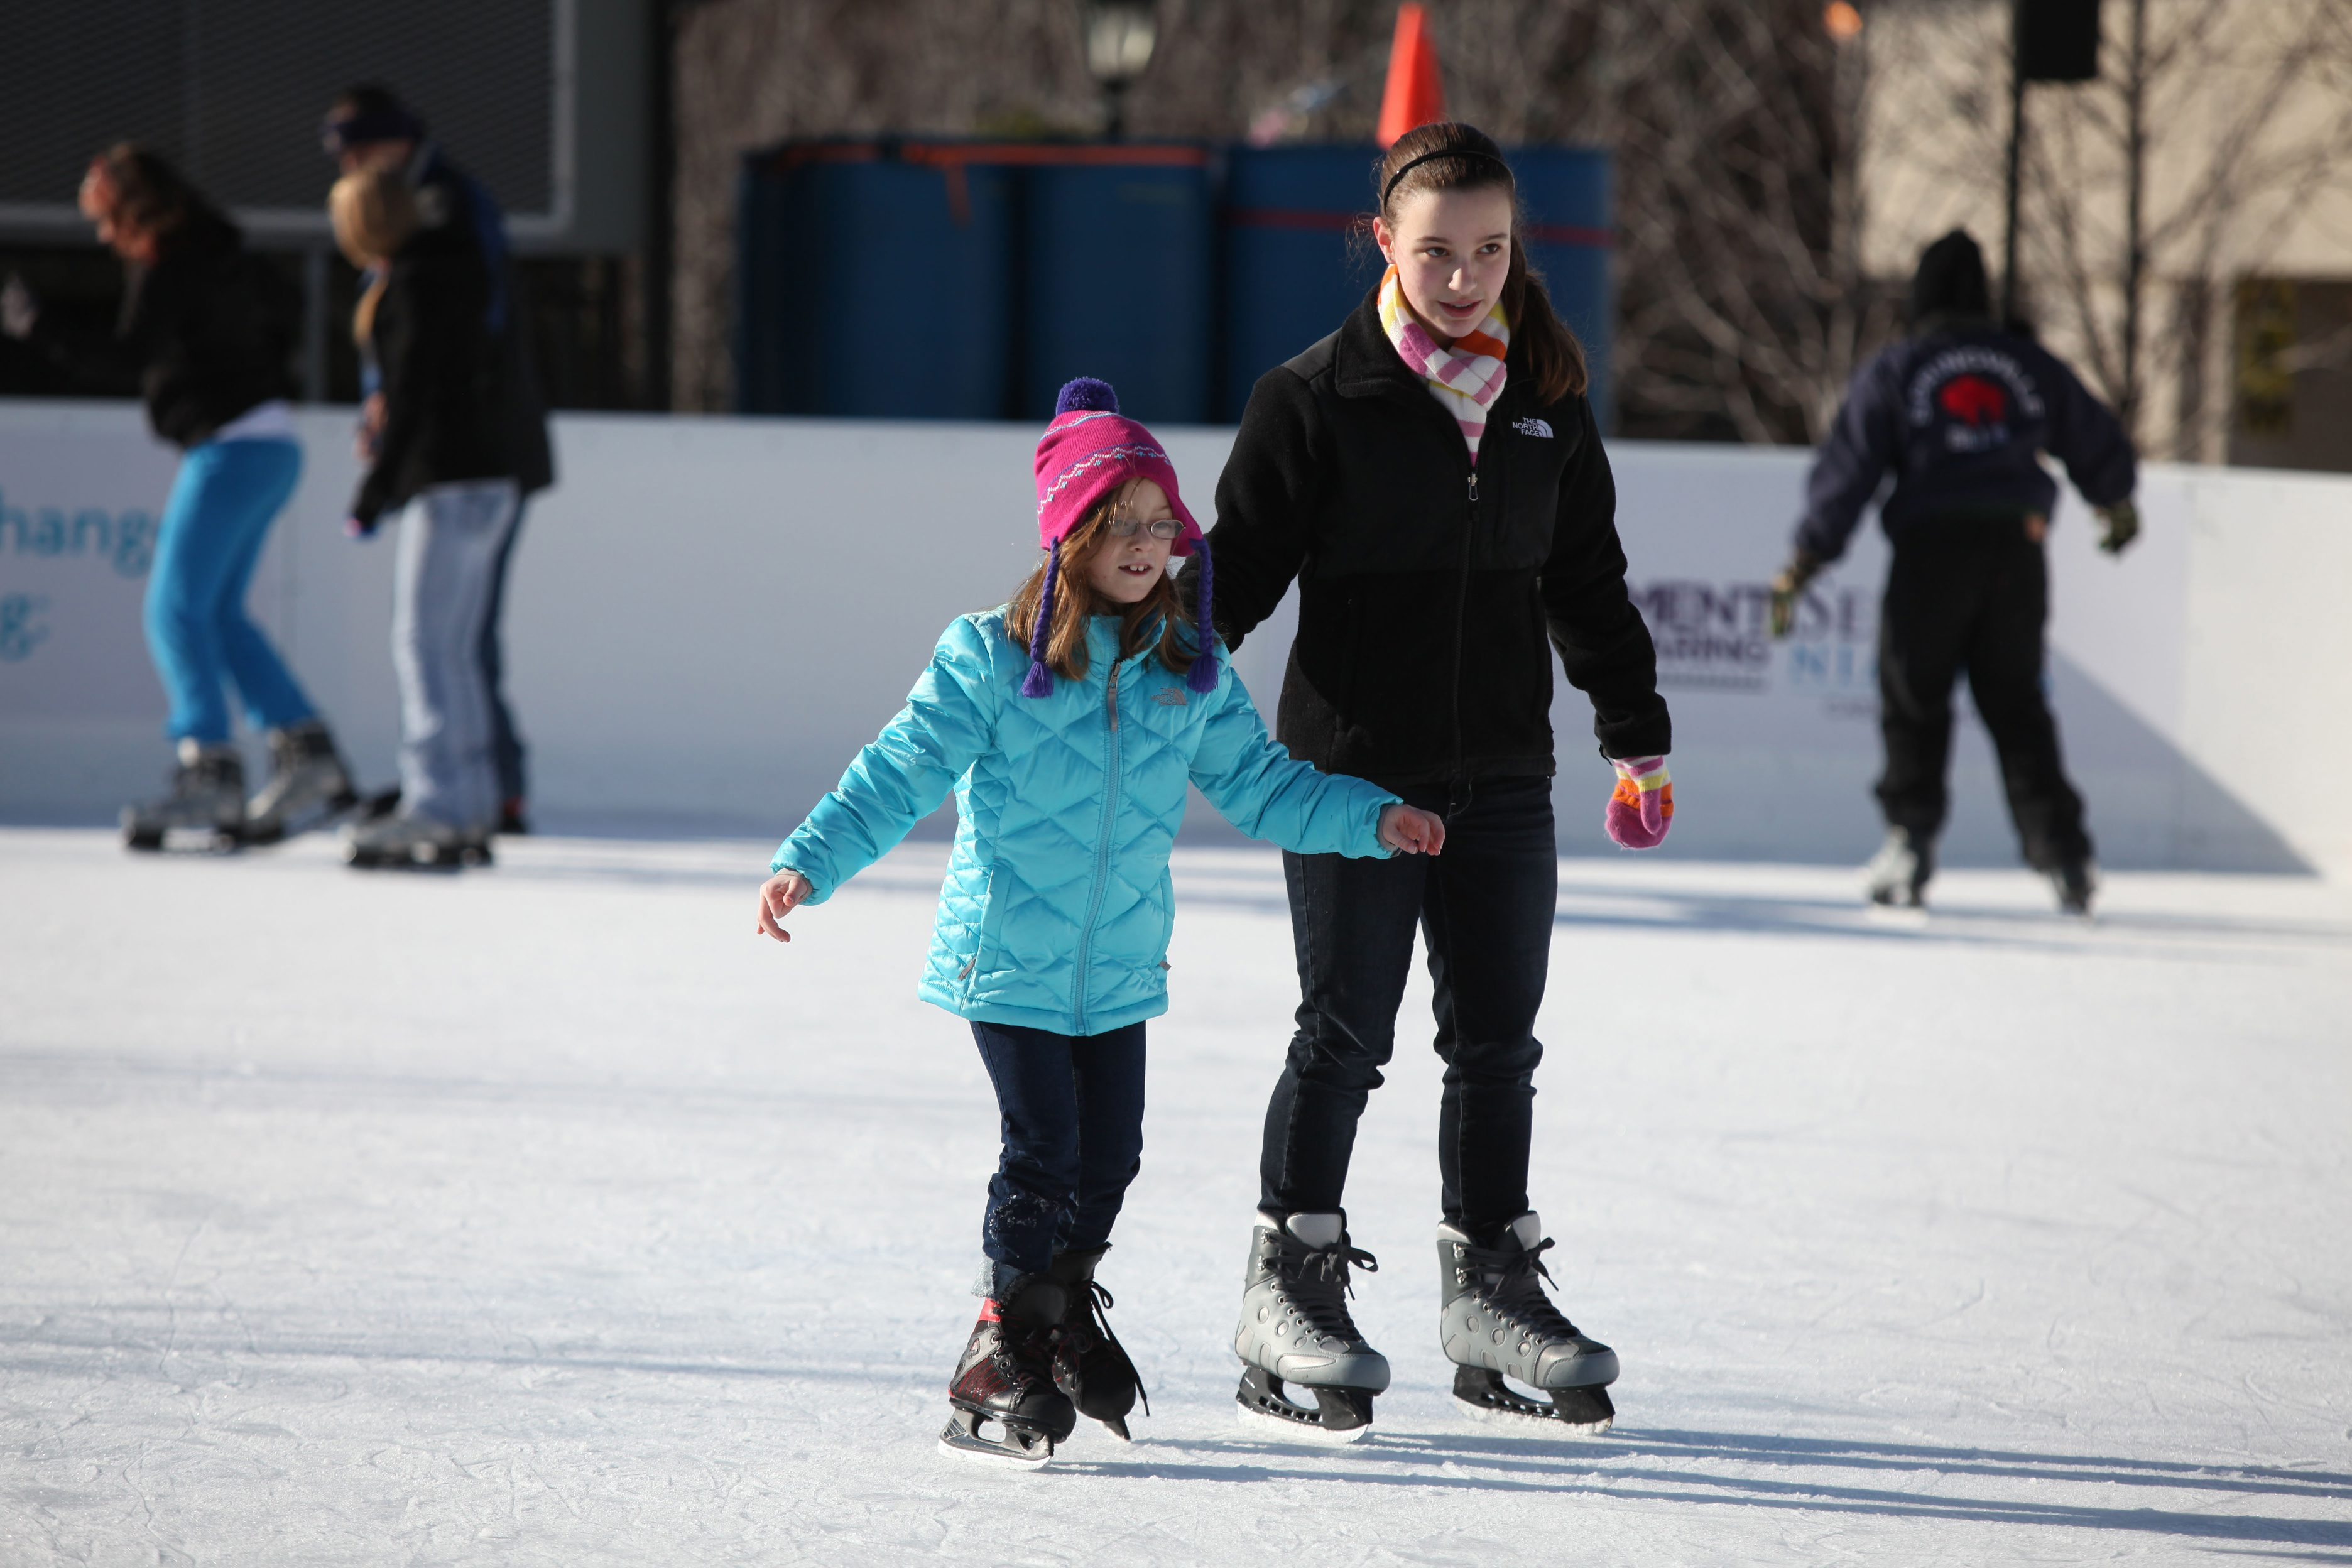 Sisters Mackenzie, 6, left, and Samantha Leone, 14, enjoy ice skating at the Niagara Holiday Market on Old Falls Street in Niagara Falls in this file photo from Dec. 26, 2011. {Charles Lewis / Buffalo News}